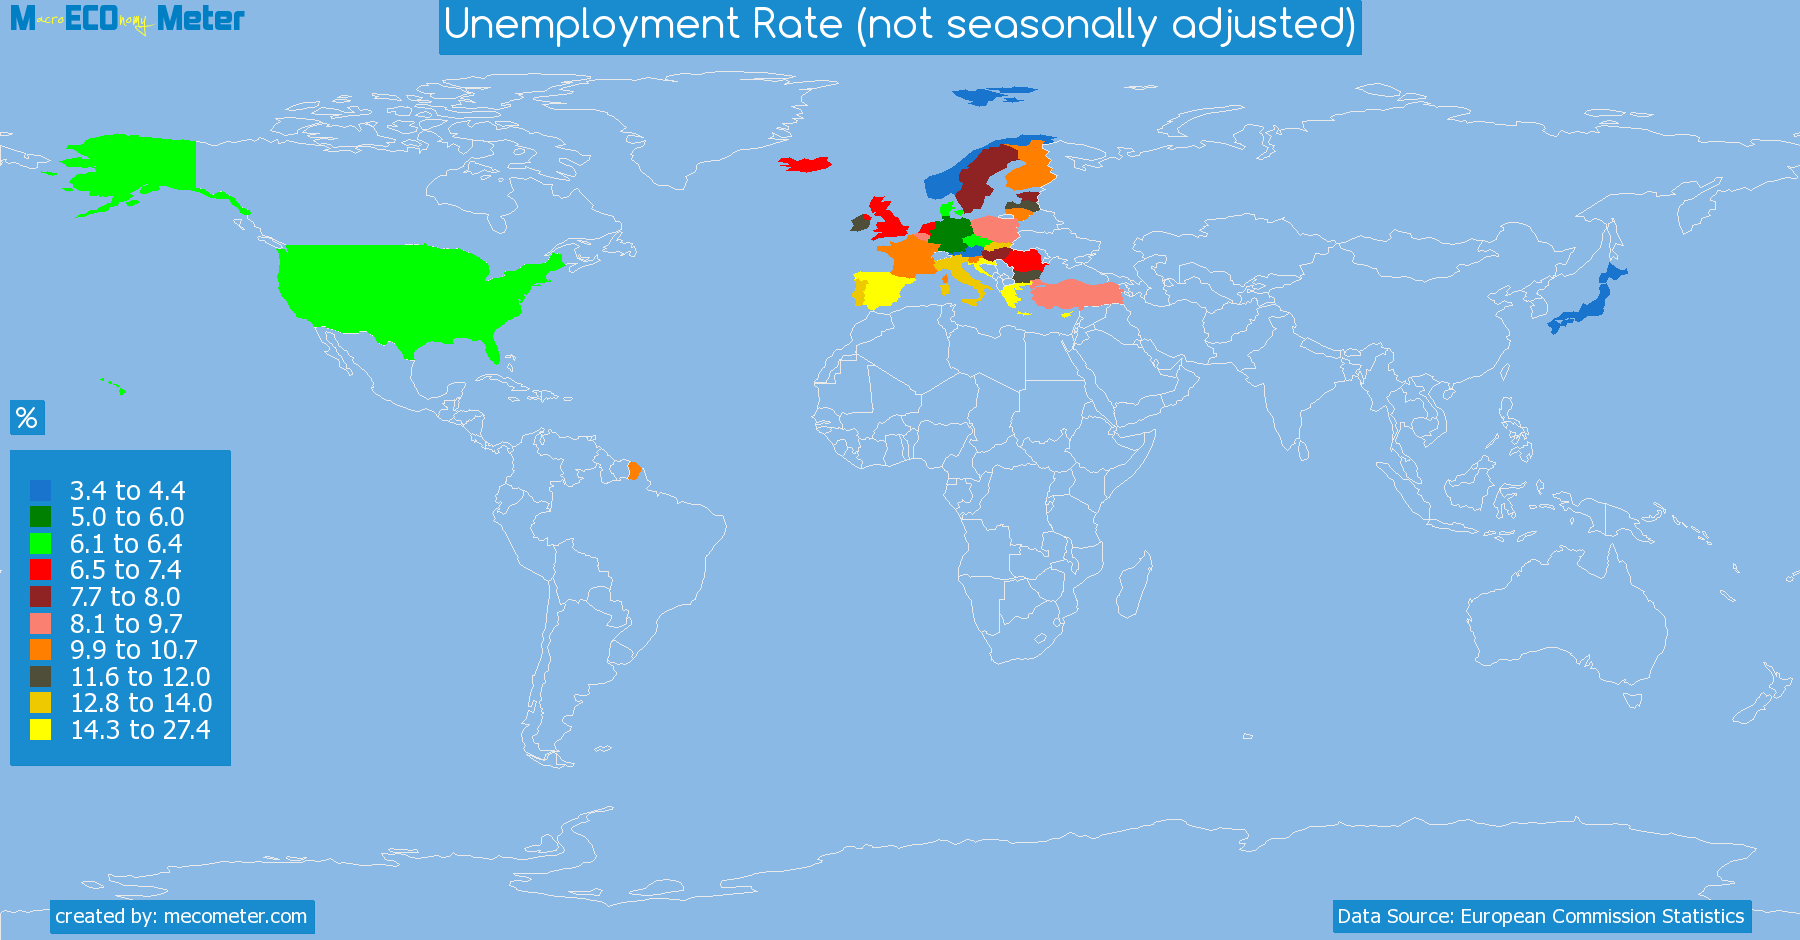 list of countries by Unemployment Rate (not seasonally adjusted)